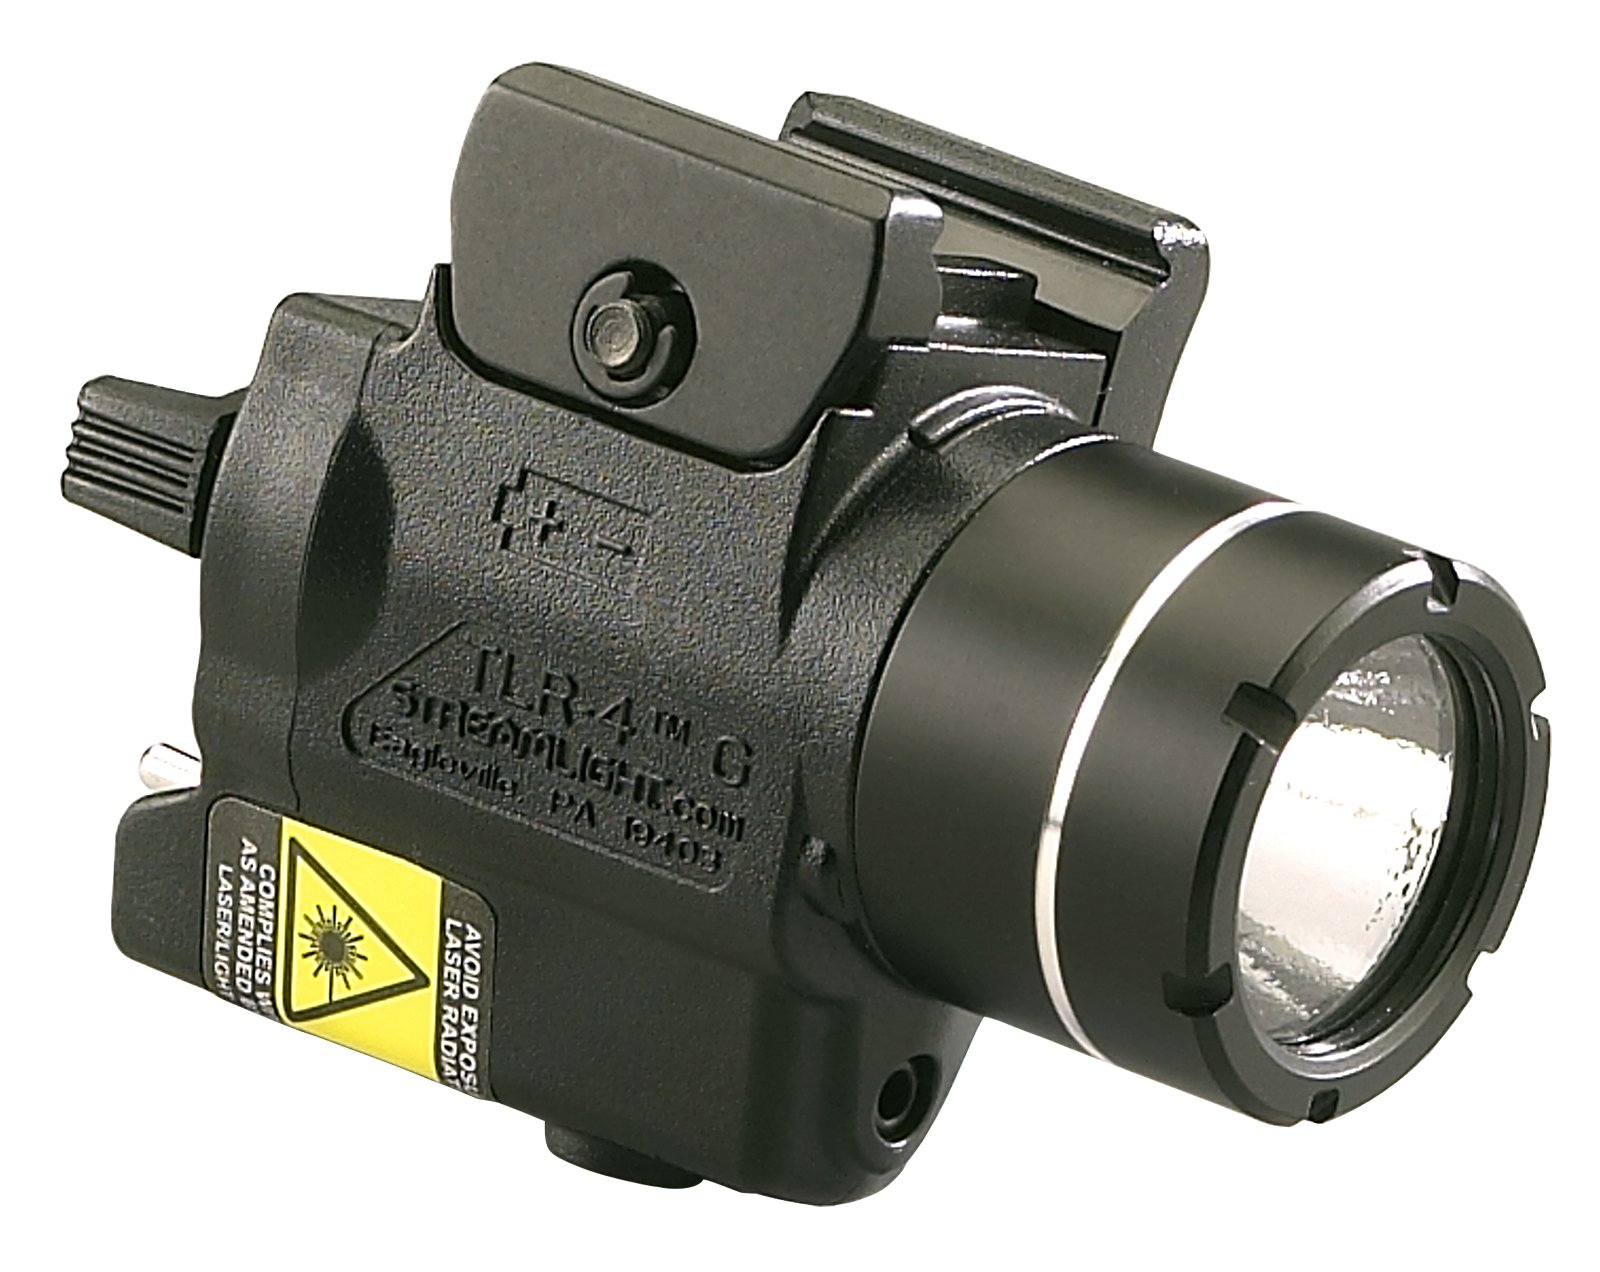 Streamlight 69247 TLR-4G H&K USP Full Size Rail Mounted Tactical Light with Integrated Green Laser and CR2 Lithium Battery by Streamlight